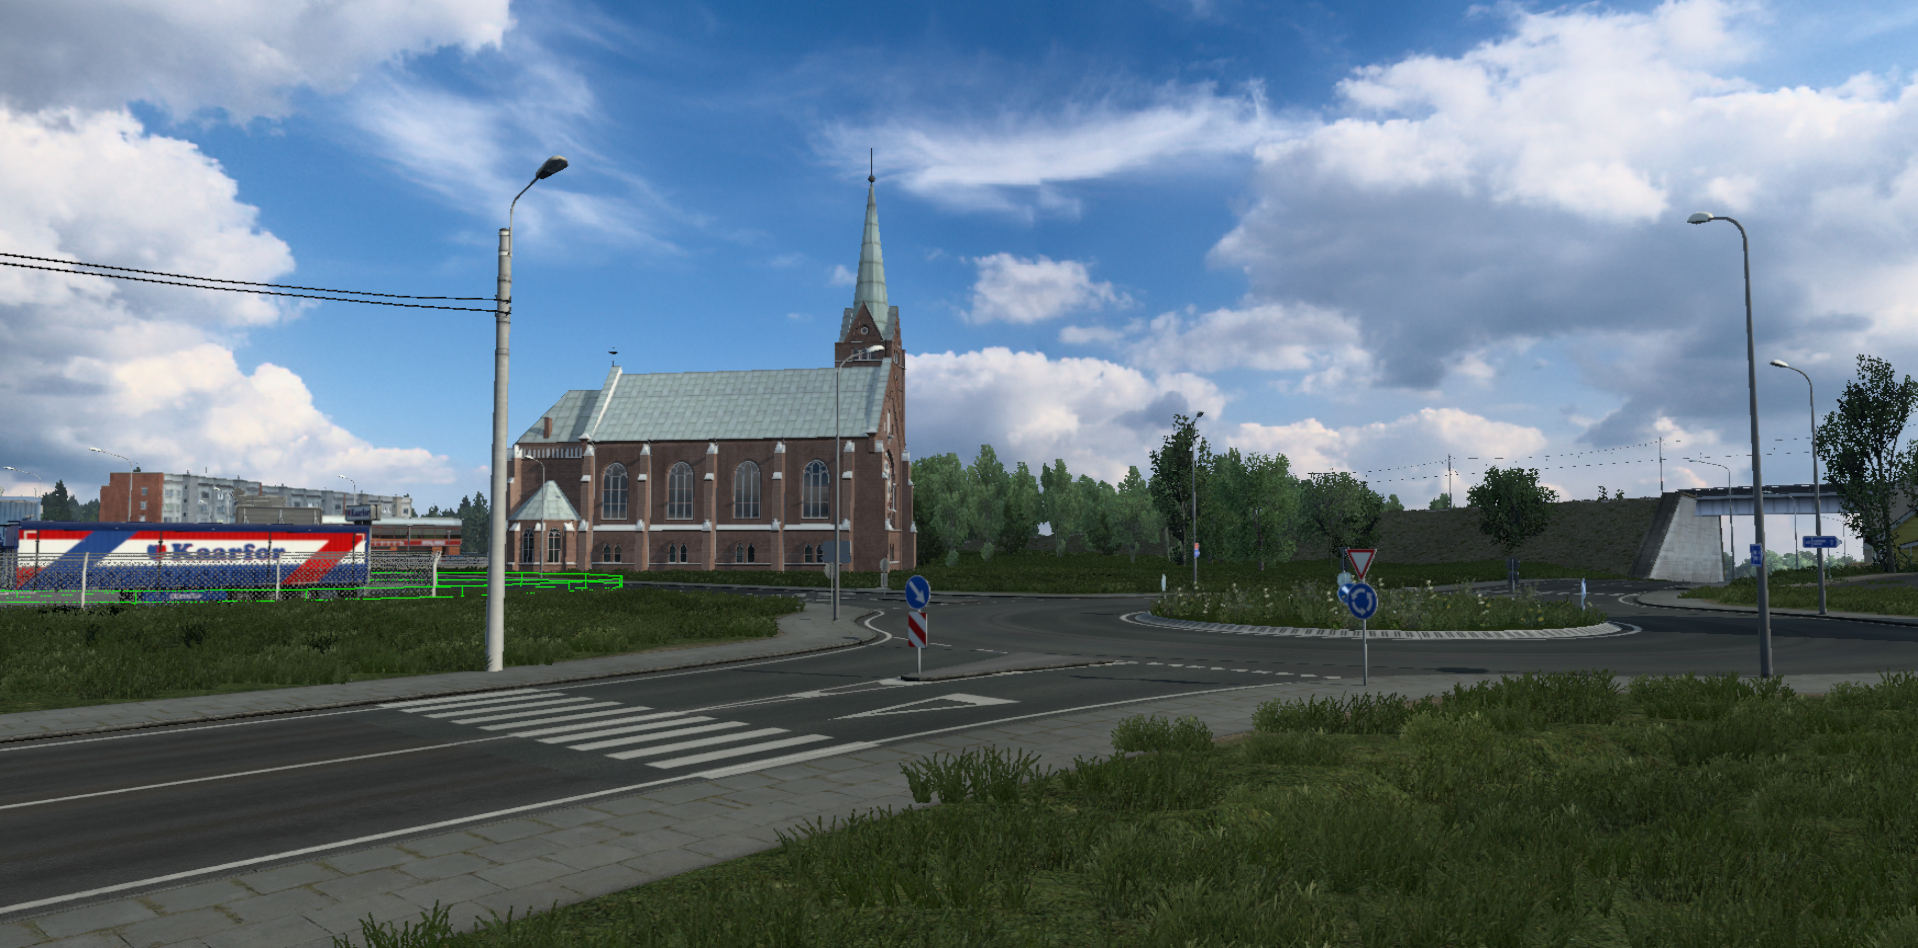 ets2_20210606_172708_00.png